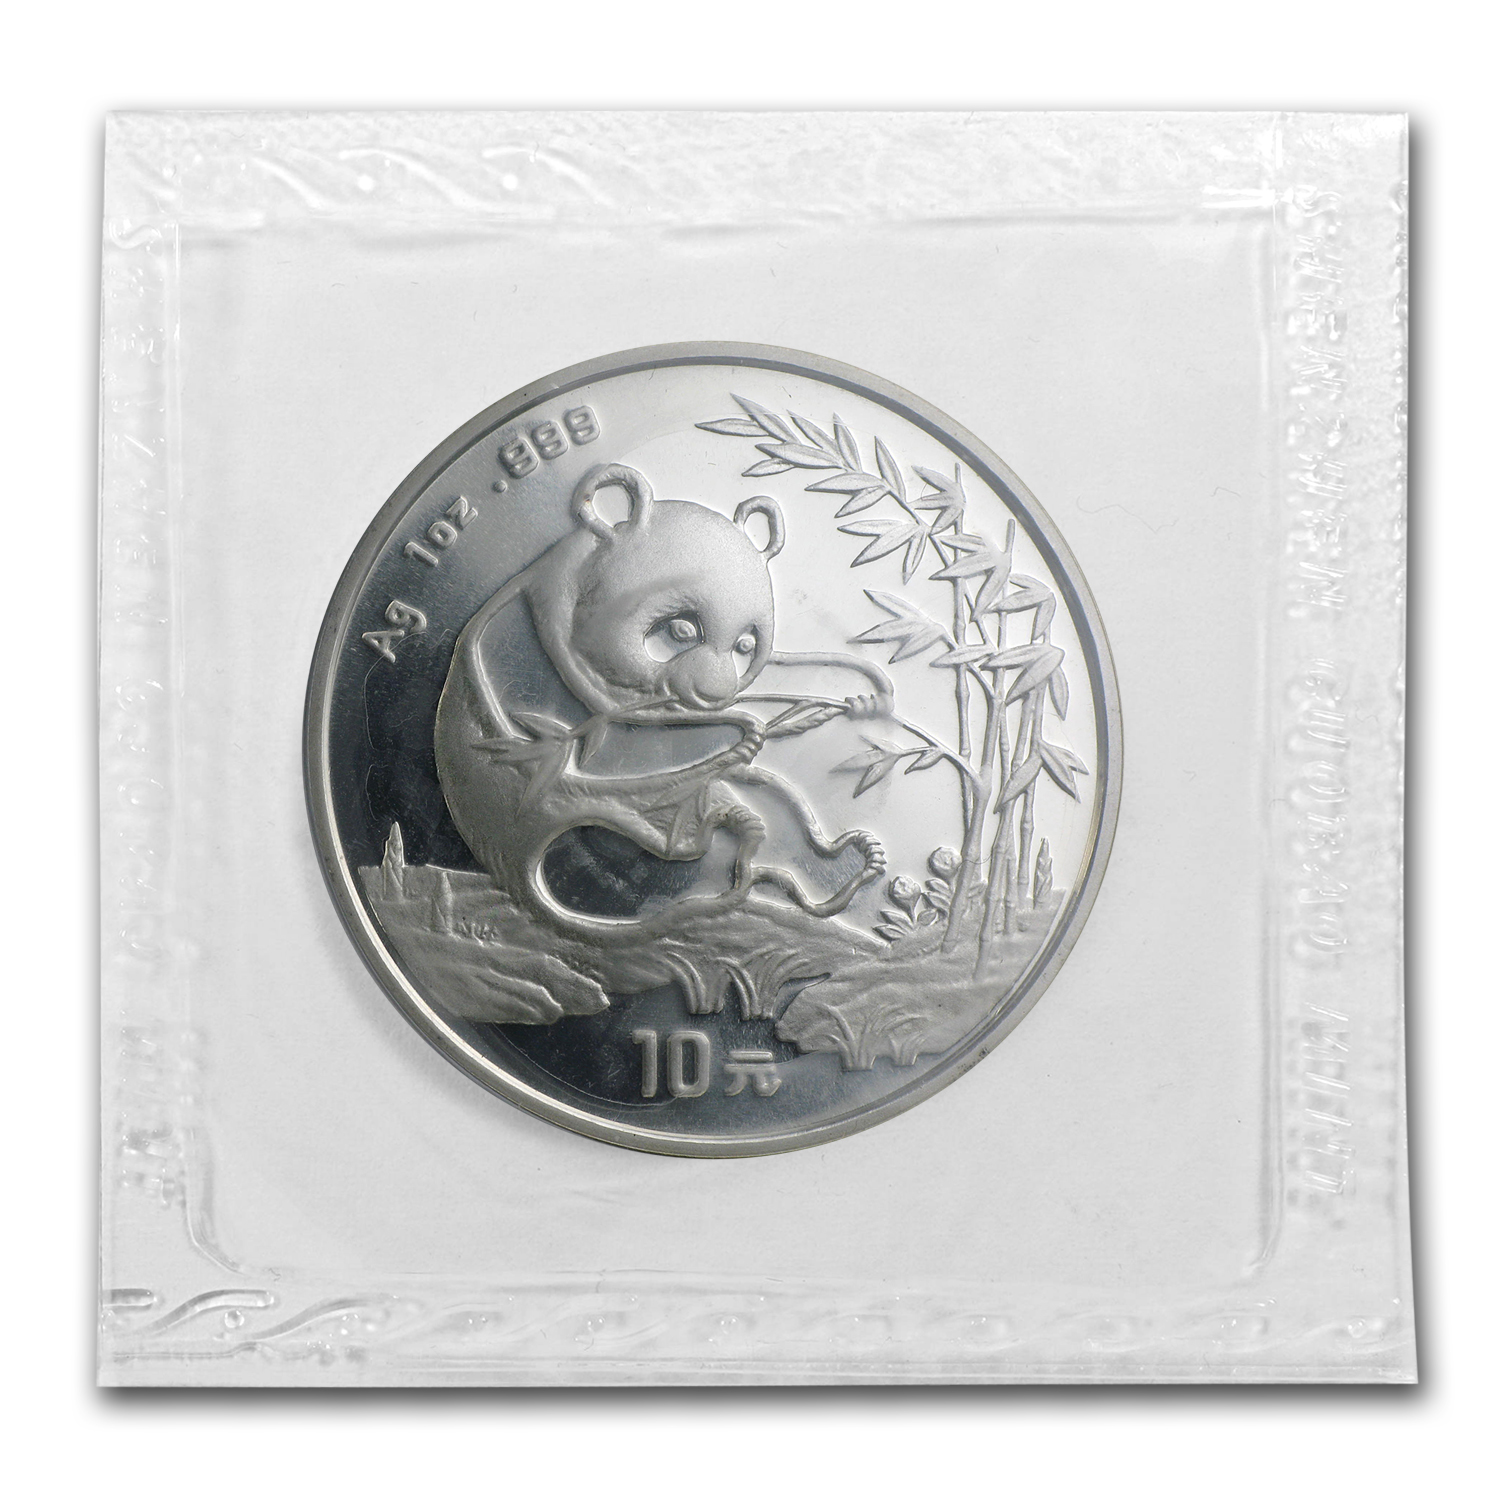 1994 1 oz Silver Chinese Panda Large Date BU (Sealed)